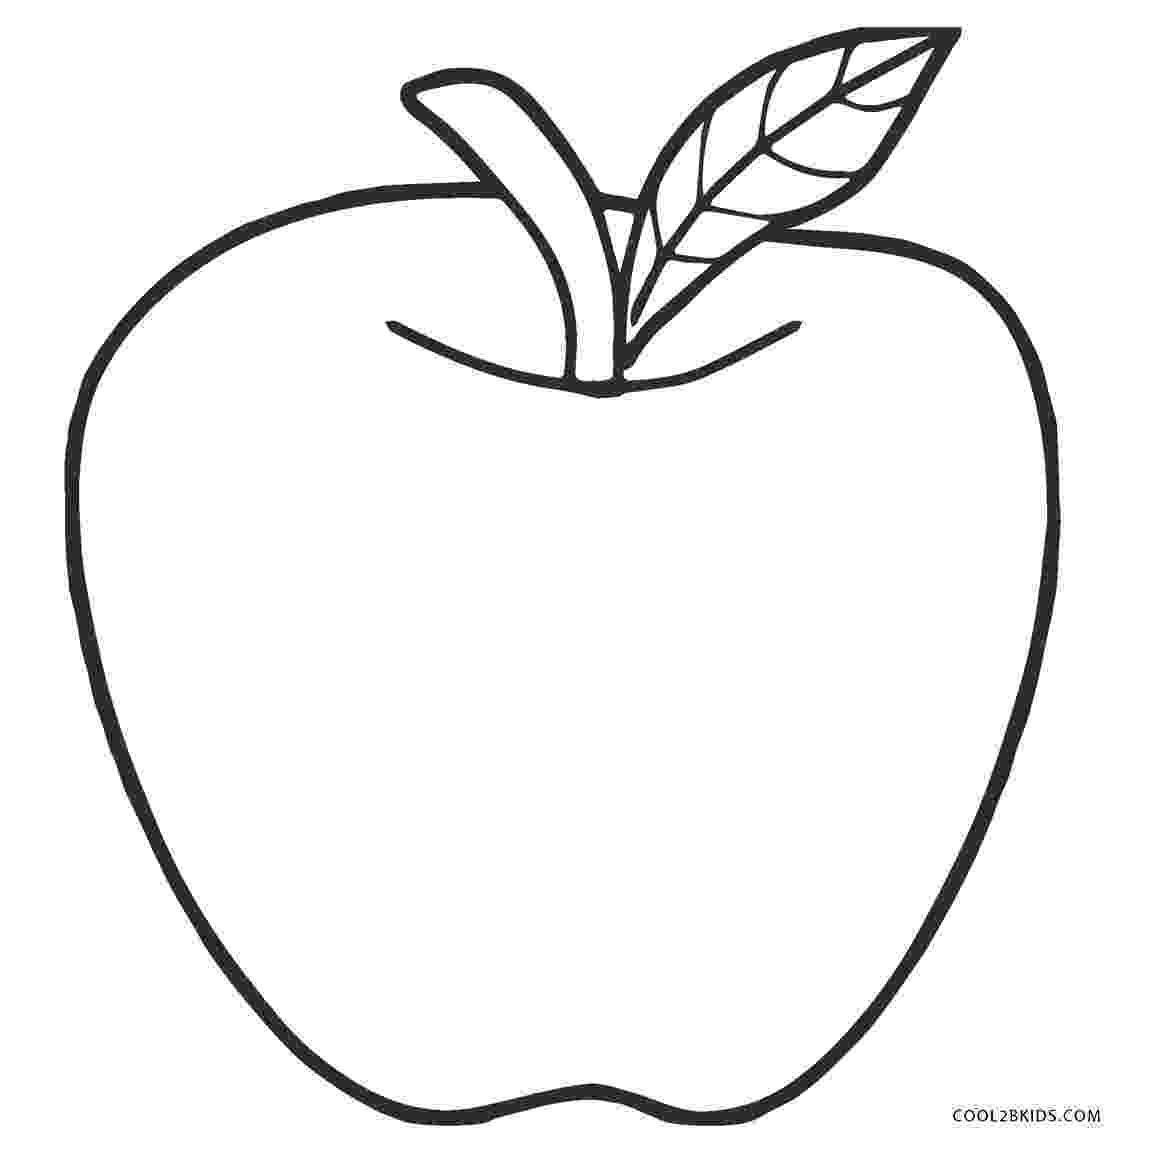 picture of apples free printable apple coloring pages for kids cool2bkids of apples picture